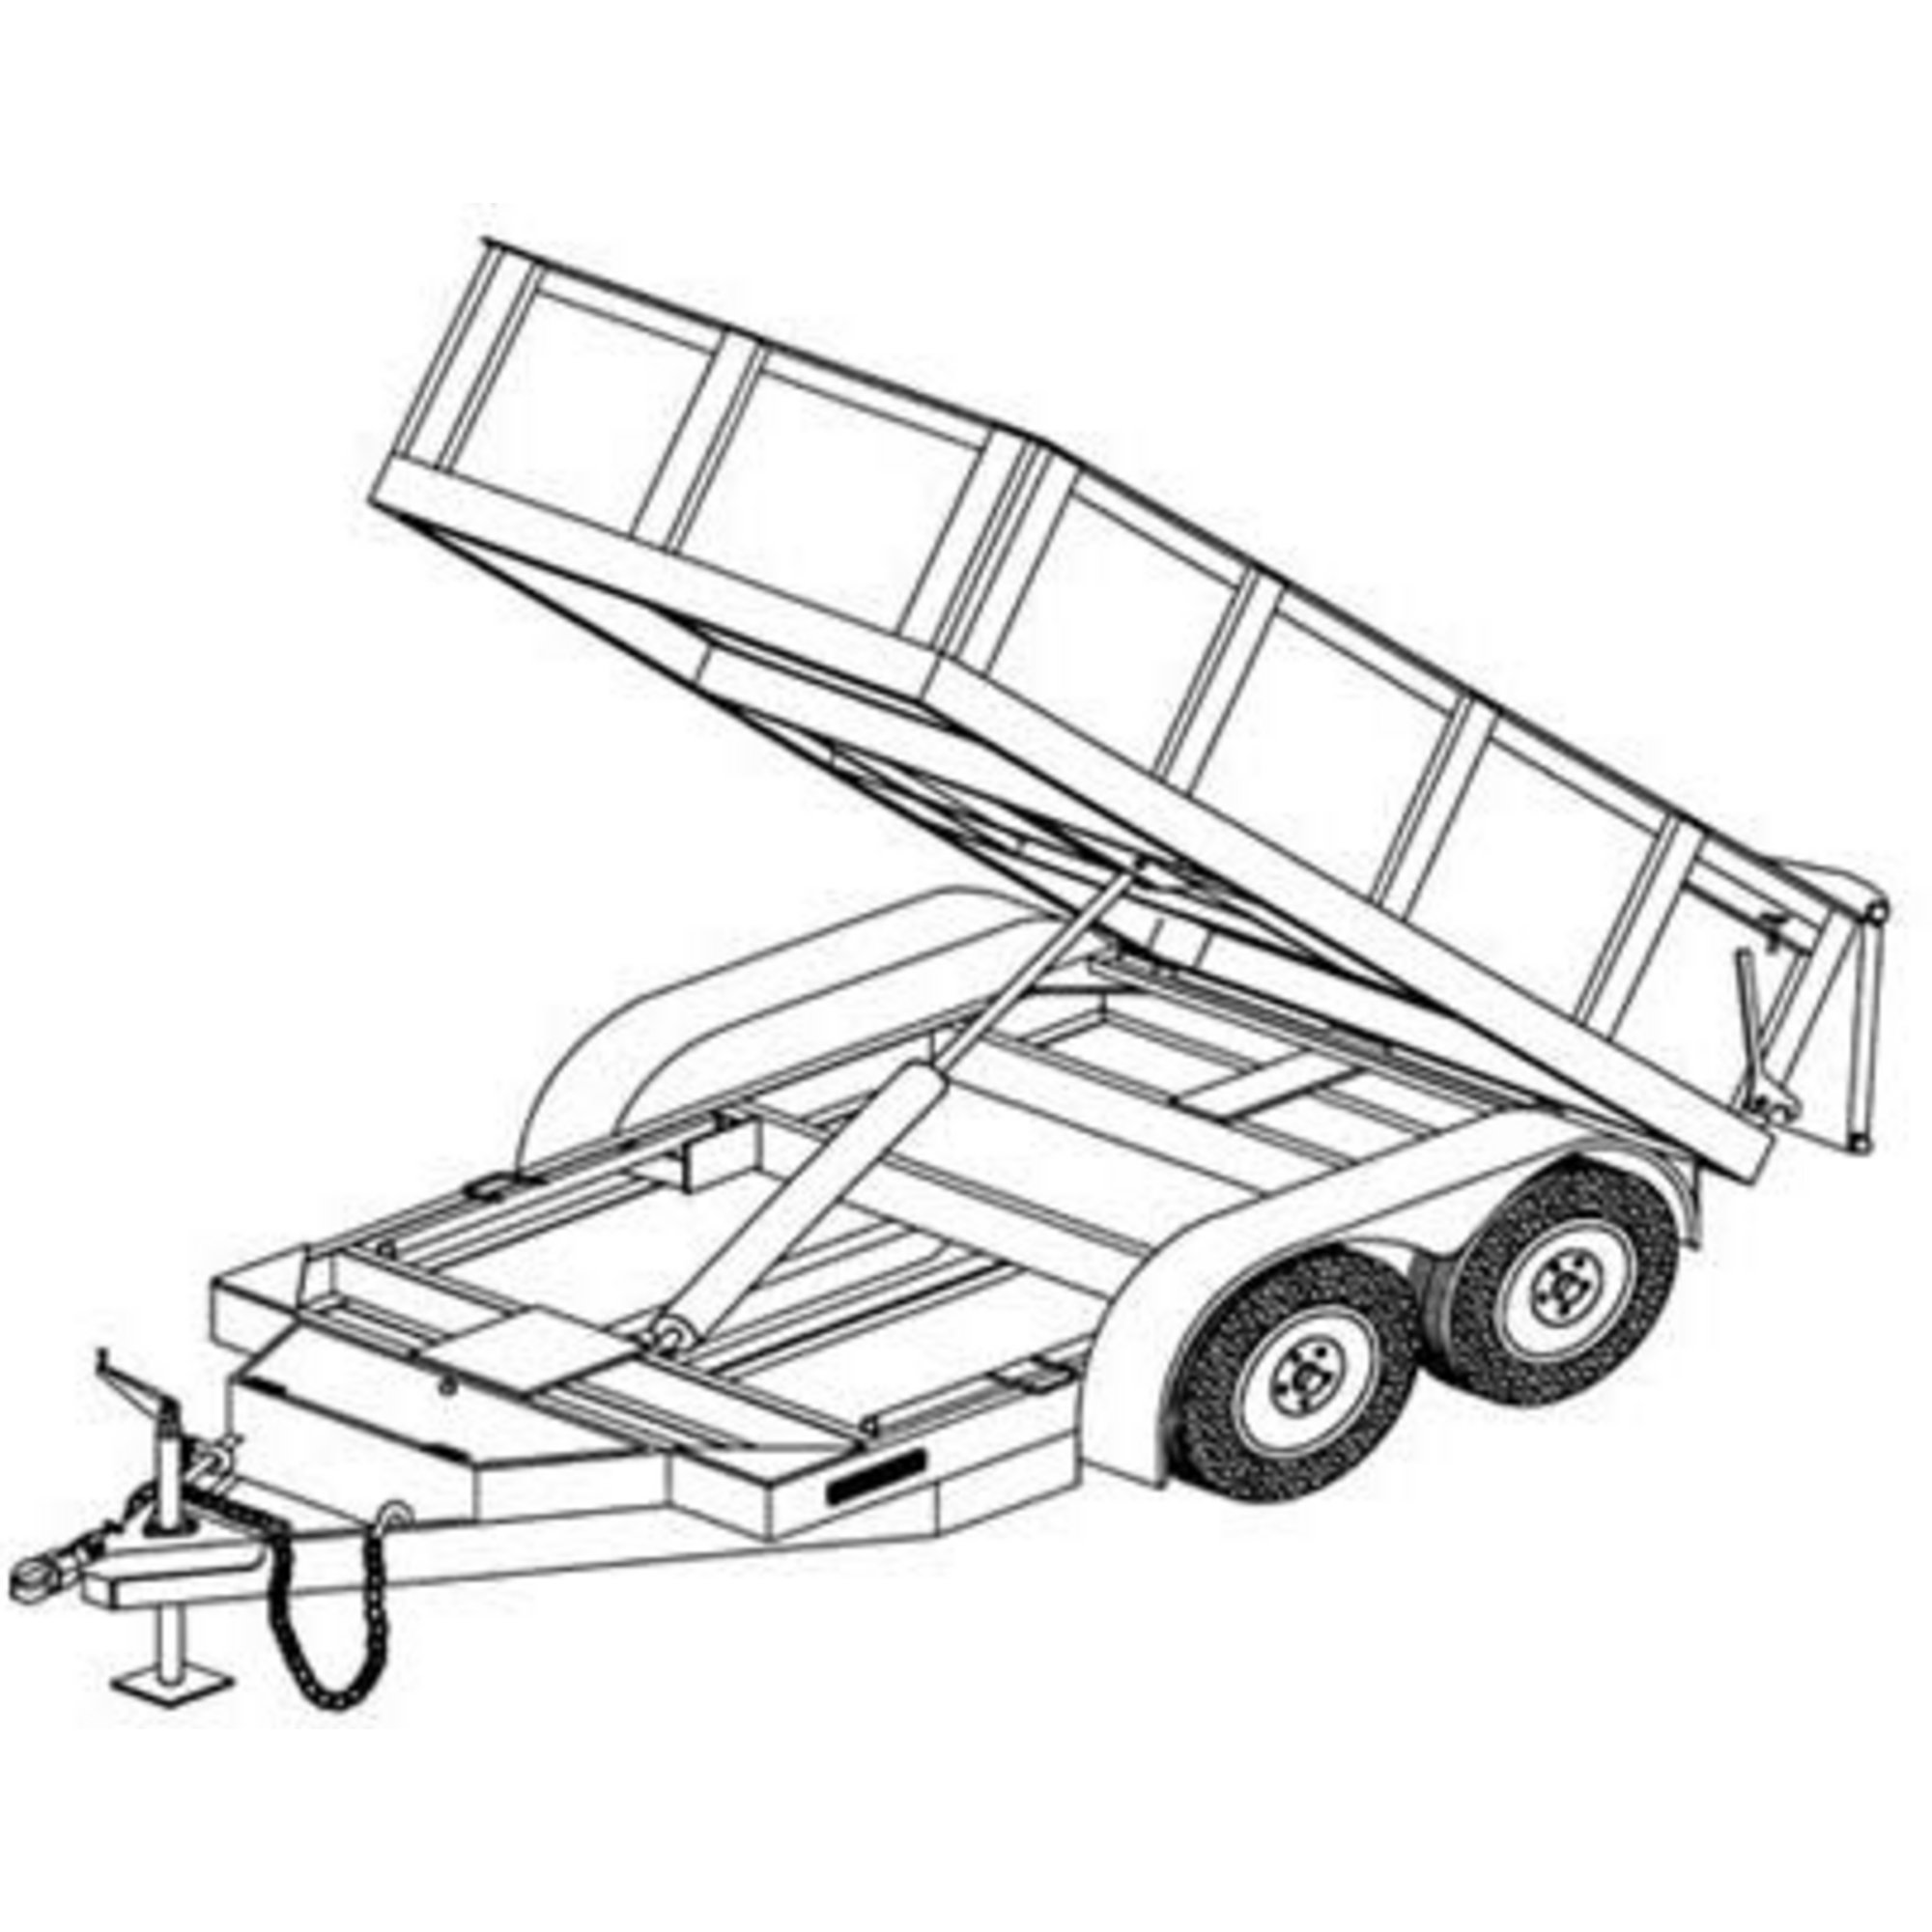 Box Truck Drawing At Getdrawings